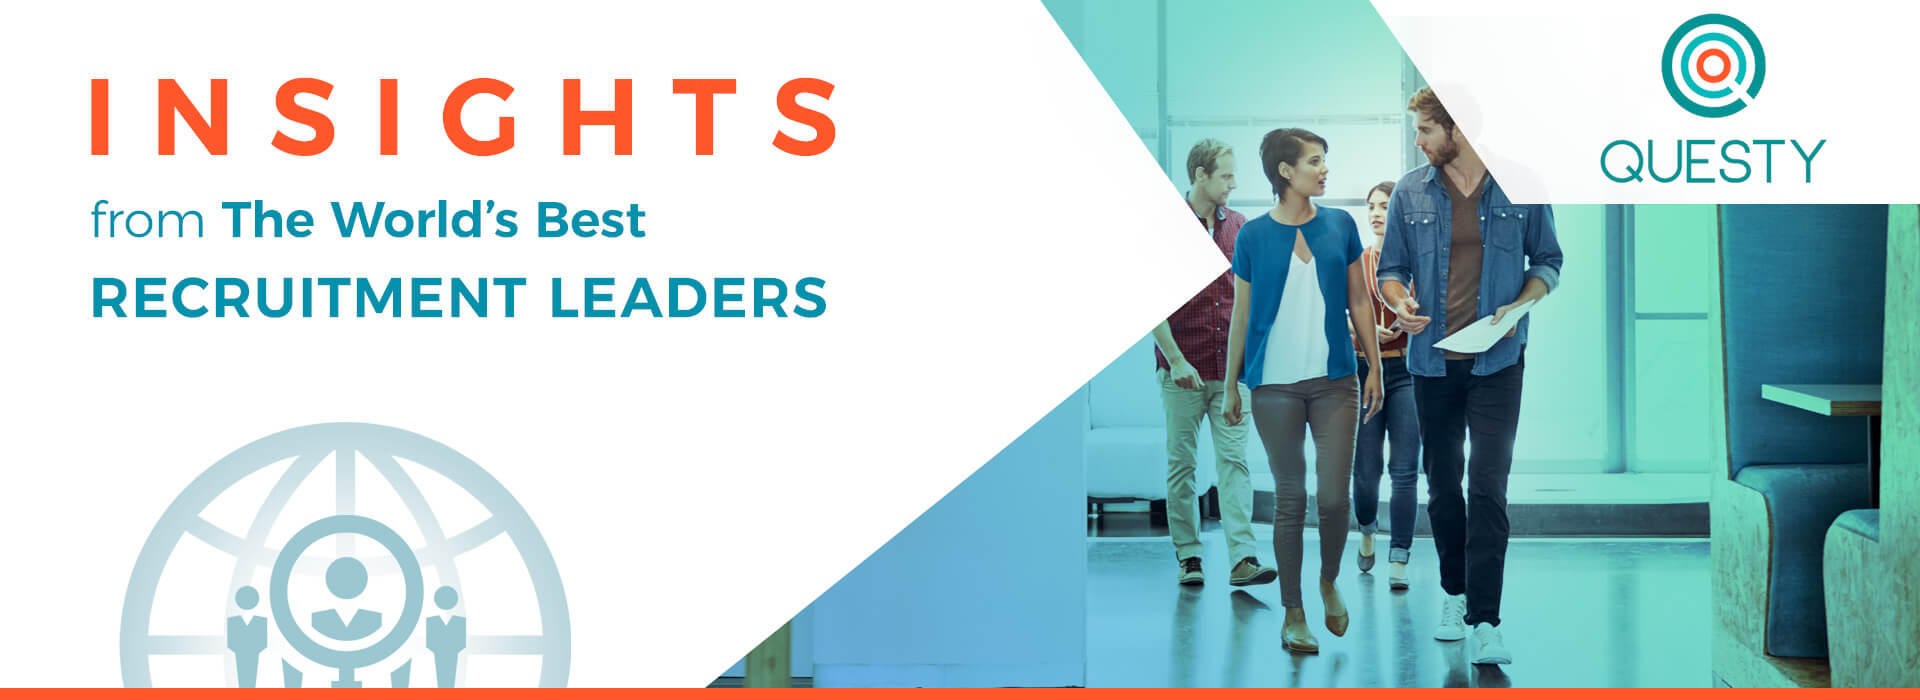 Insights from the World's Best Recruitment Leaders